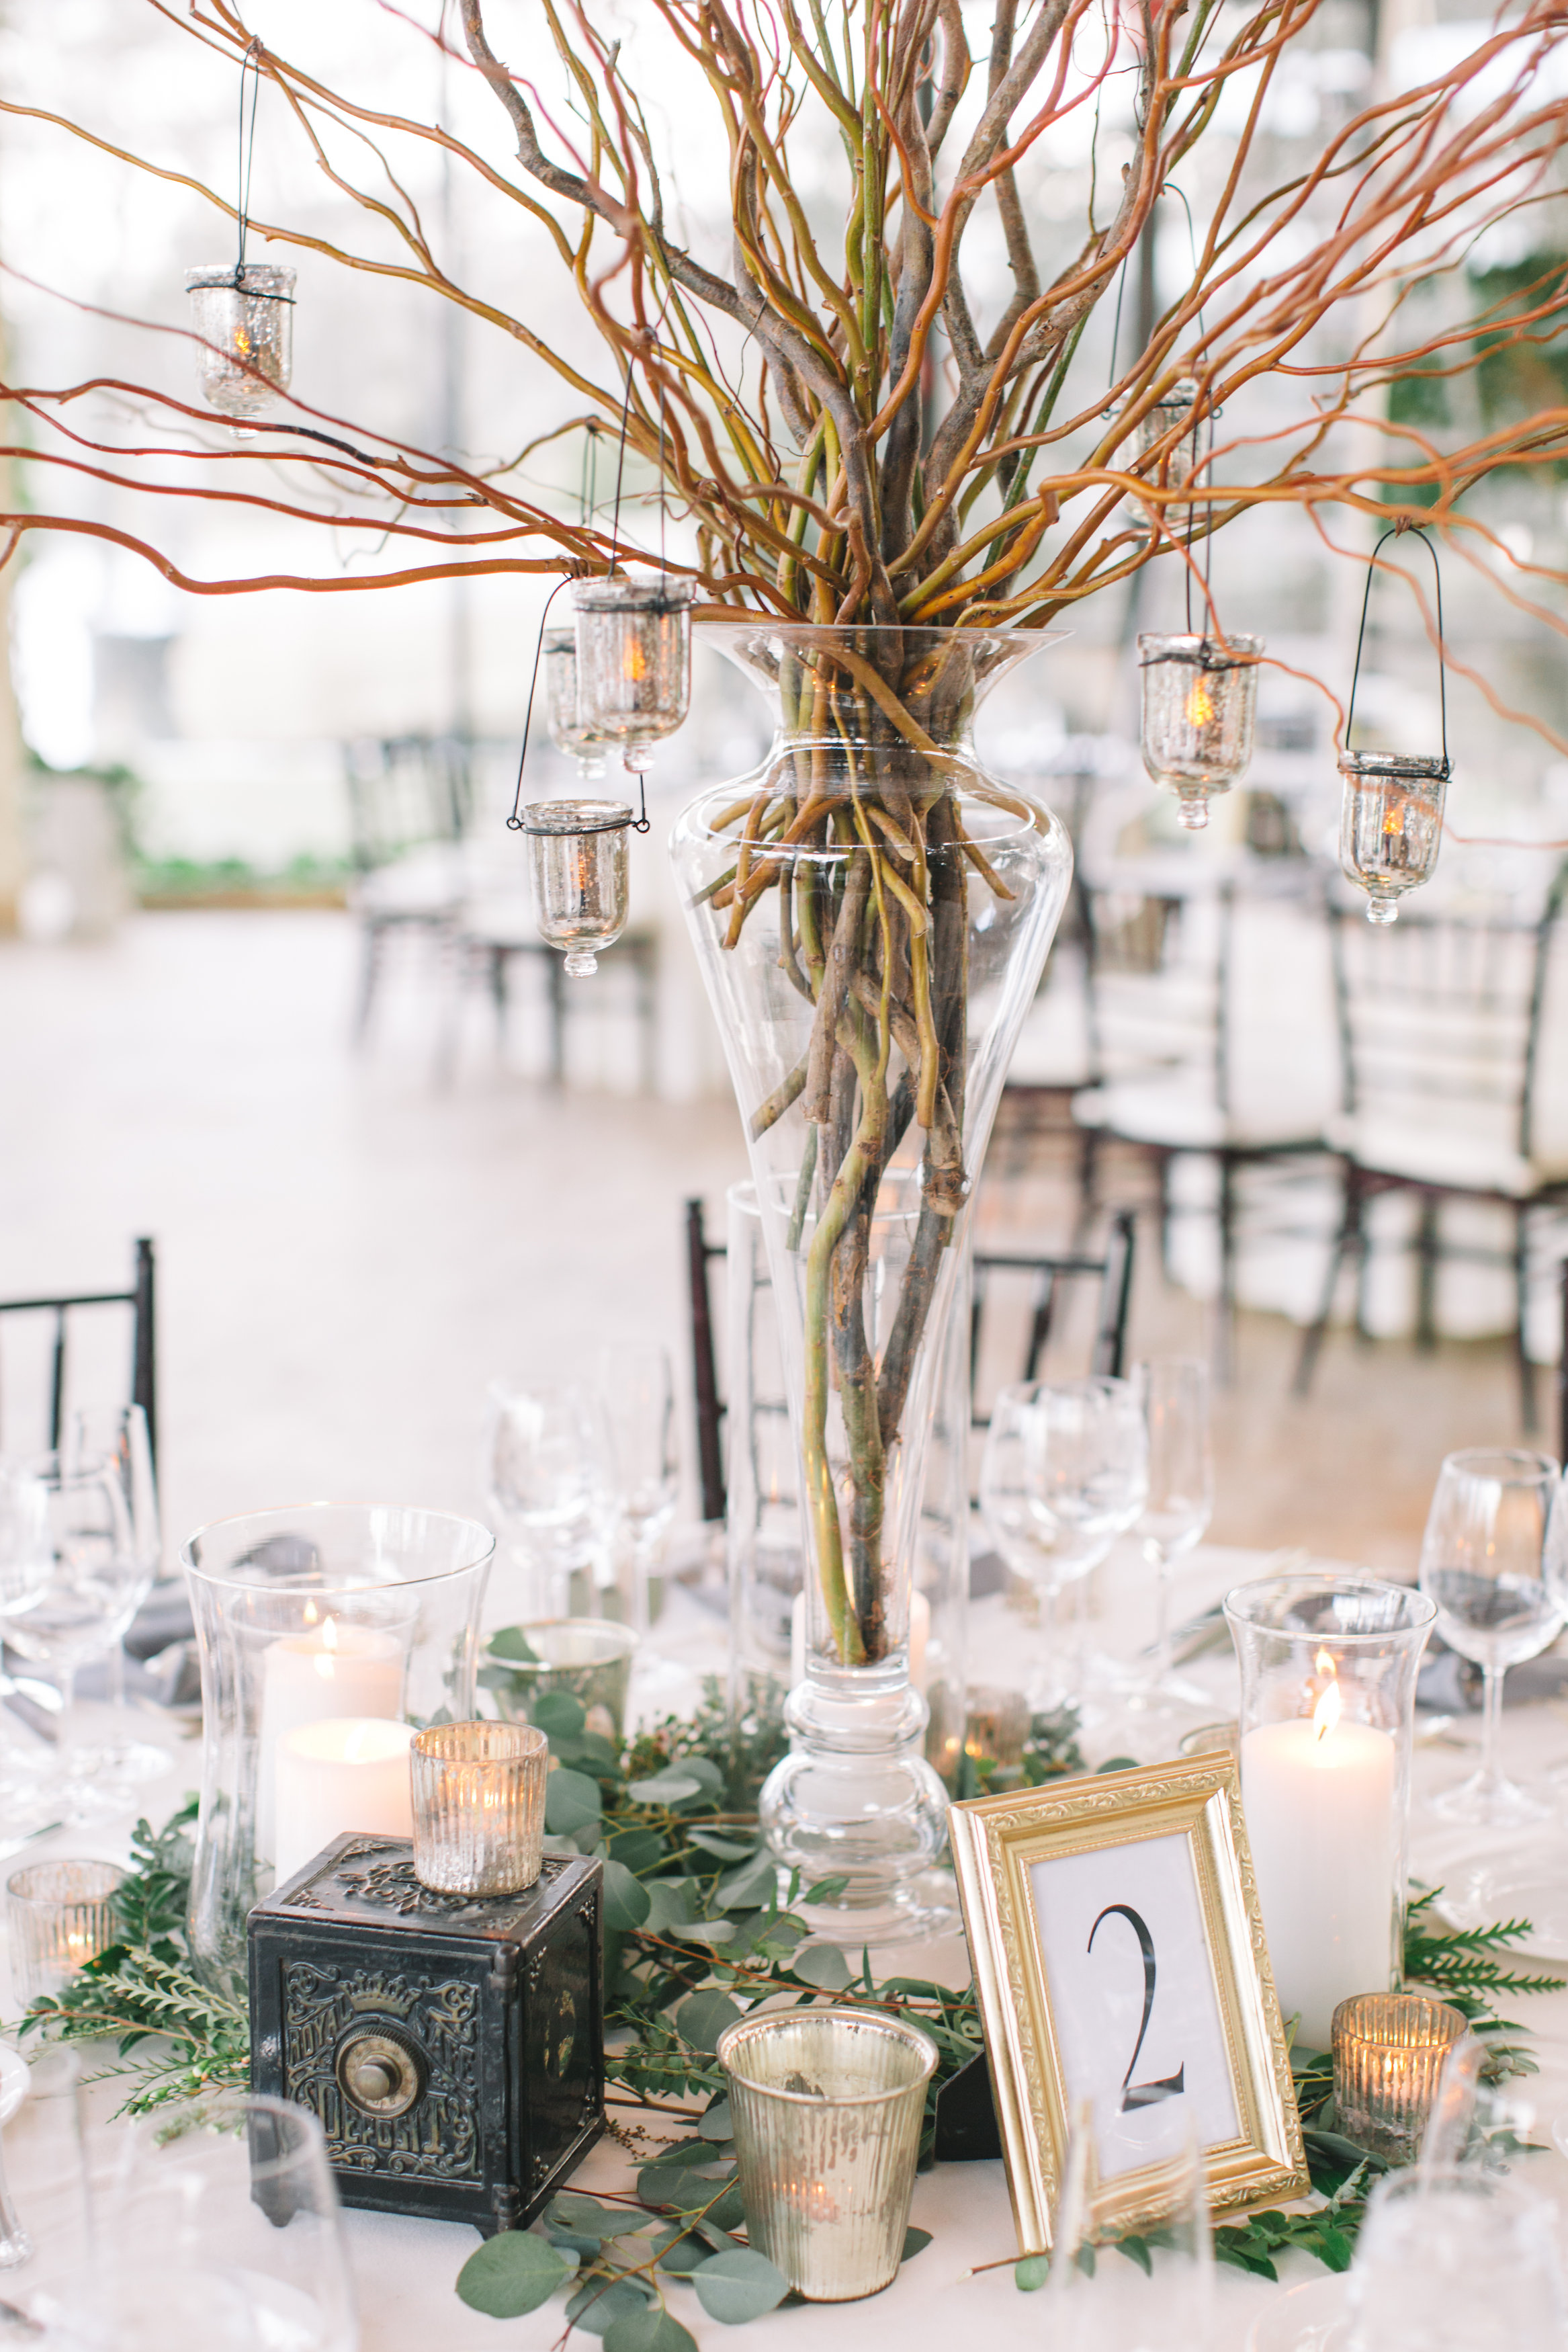 Tall branch centerpiece with hanging votives · allium